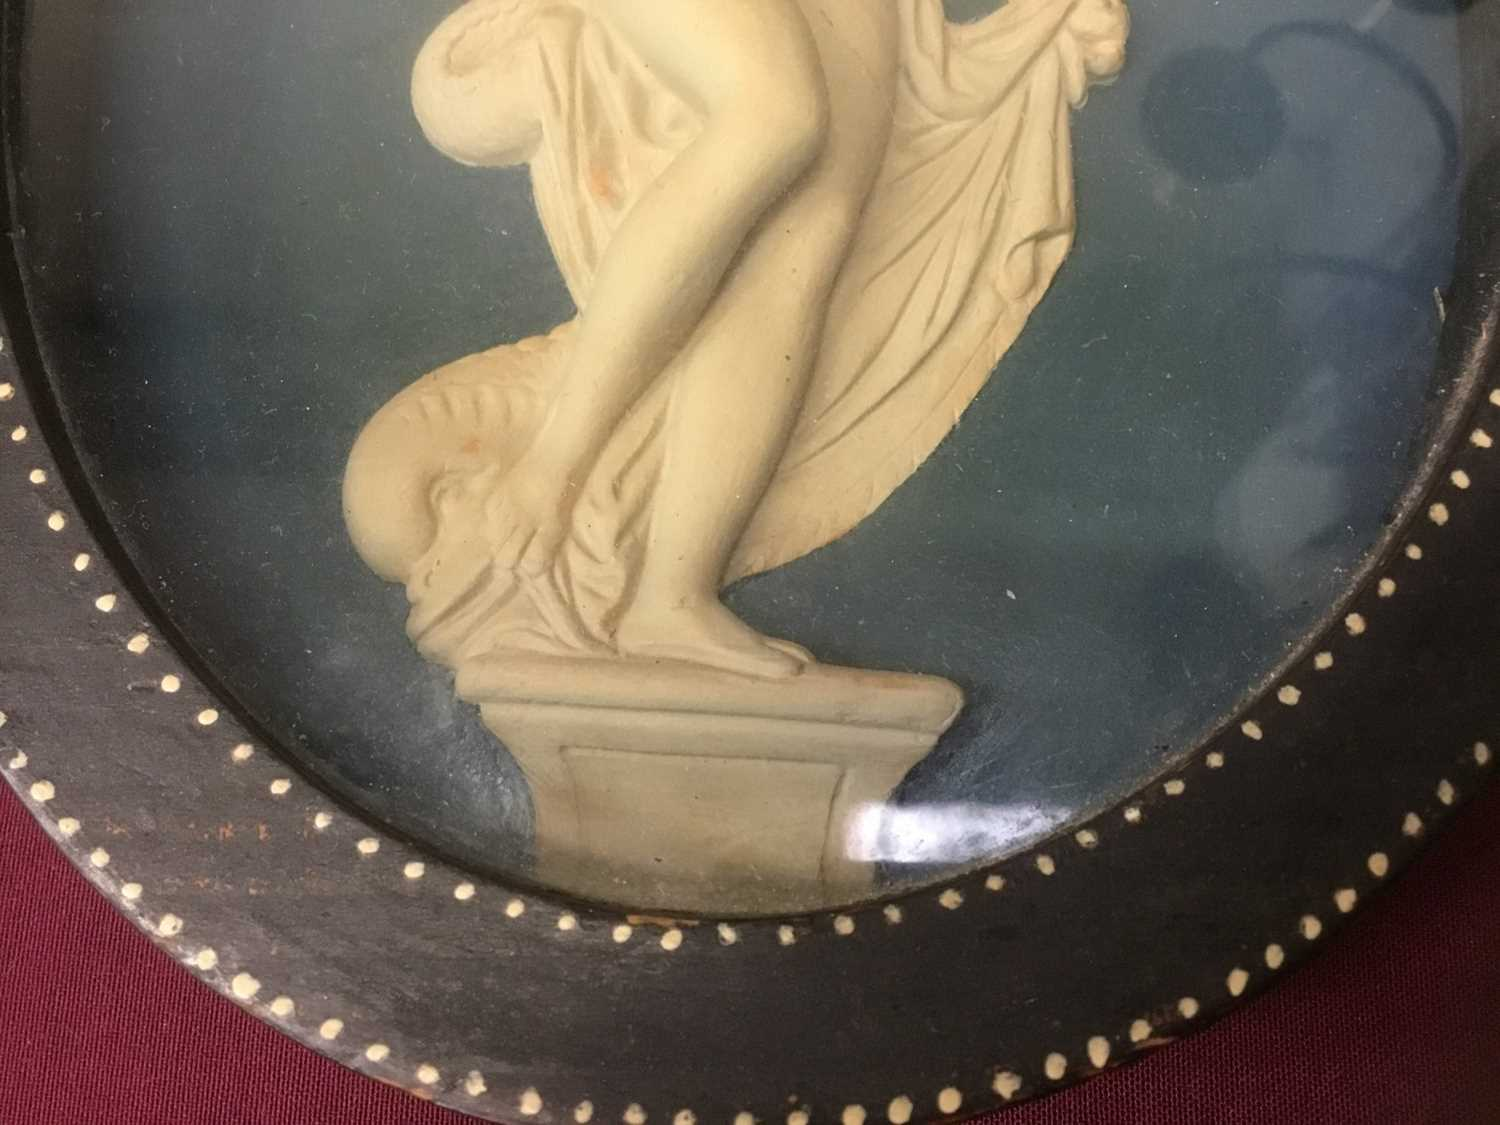 Pair of late 18th/early 19th century composition oval relief plaques depicting classical figures, in - Image 8 of 11